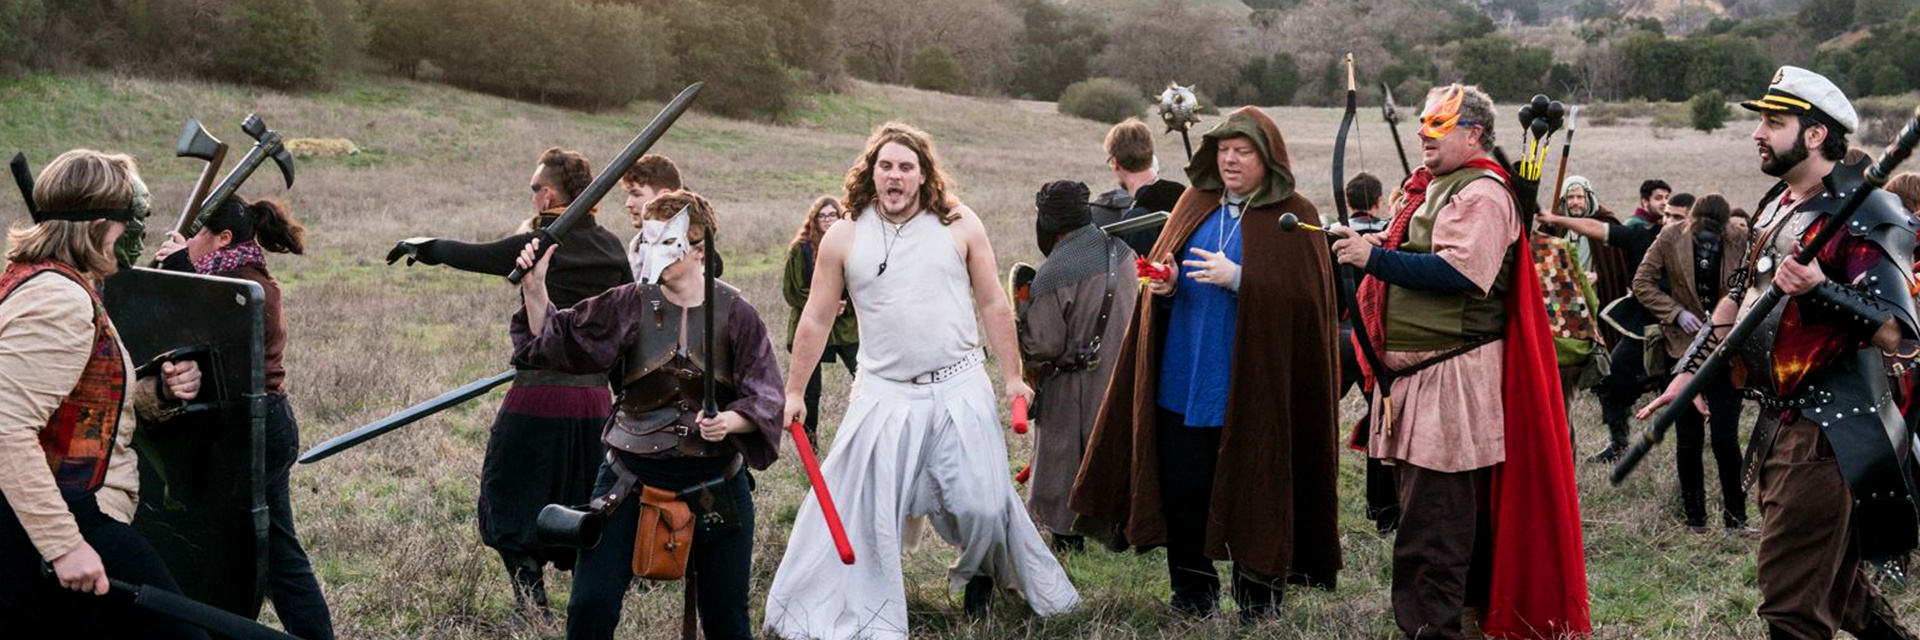 High Fantasy Boffer LARP in Southern California